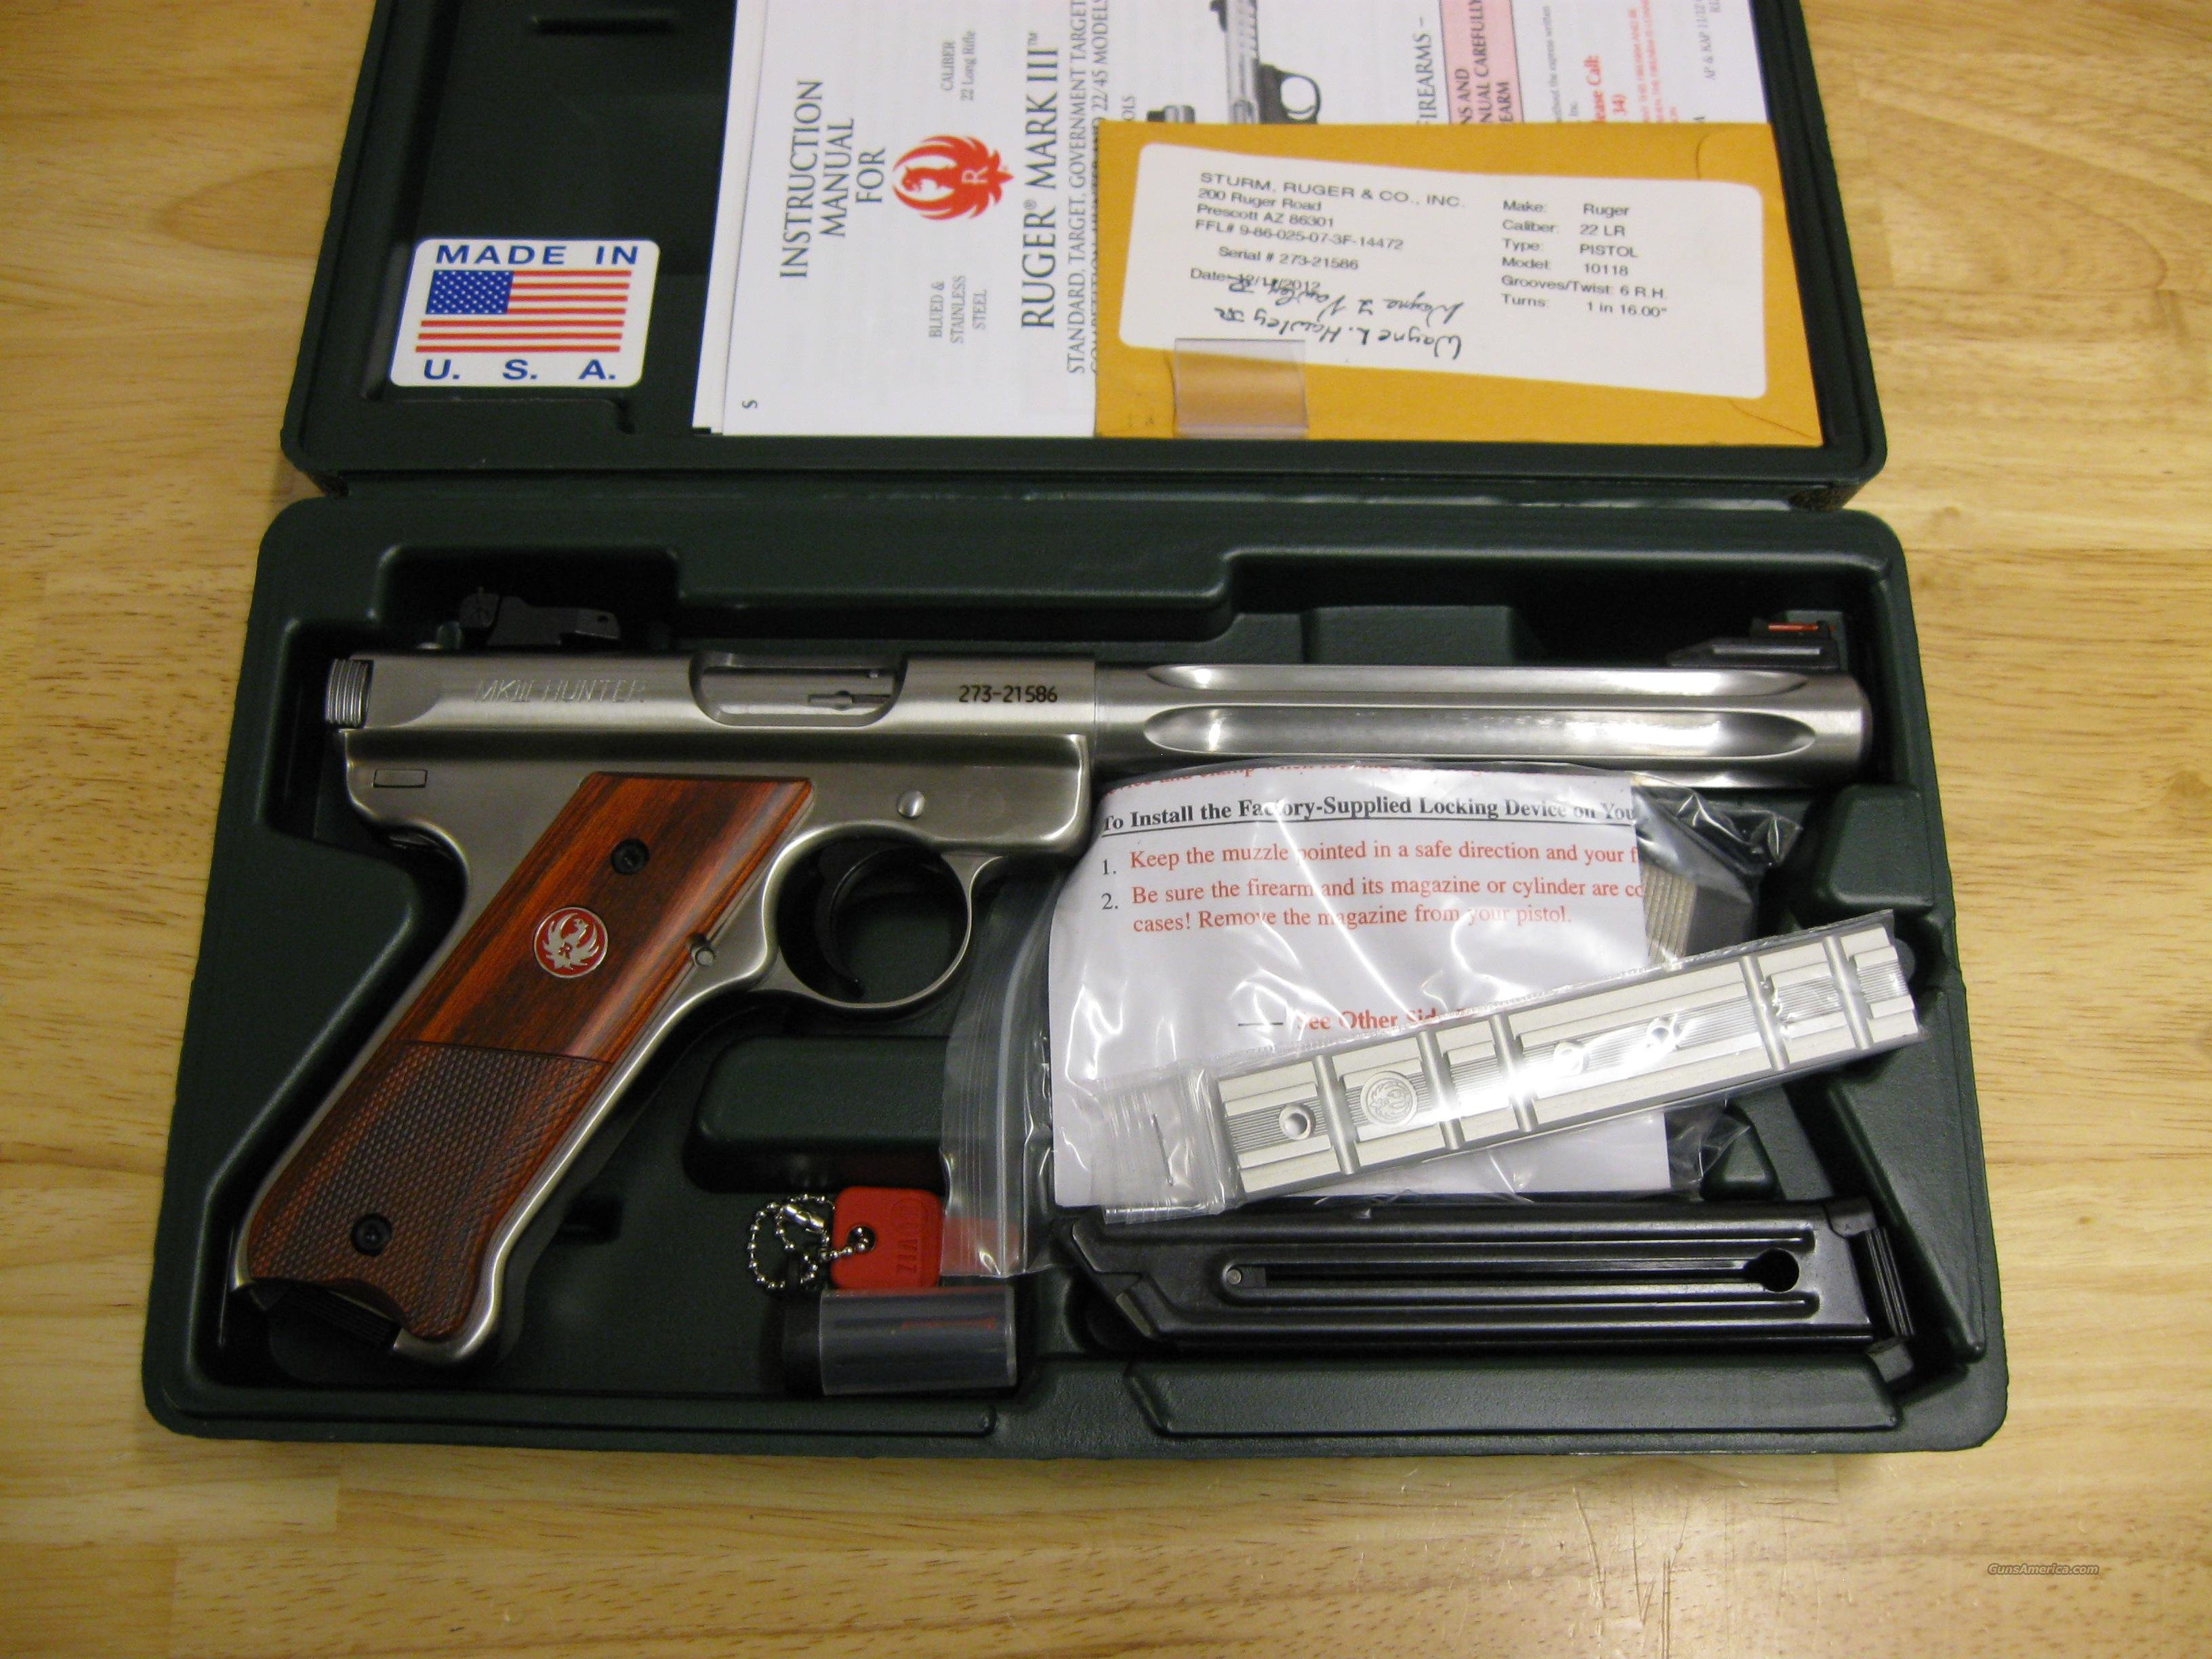 Ruger Mark III KMKIII Model678H Rimfire Pistol 10118, 22 Long Rifle, 6 7/8 in, Half Check Cocobolo Grip, Stainless Finish, 10 Rd, Fiber Opt Sights  Guns > Pistols > Ruger Semi-Auto Pistols > Mark I & II Family